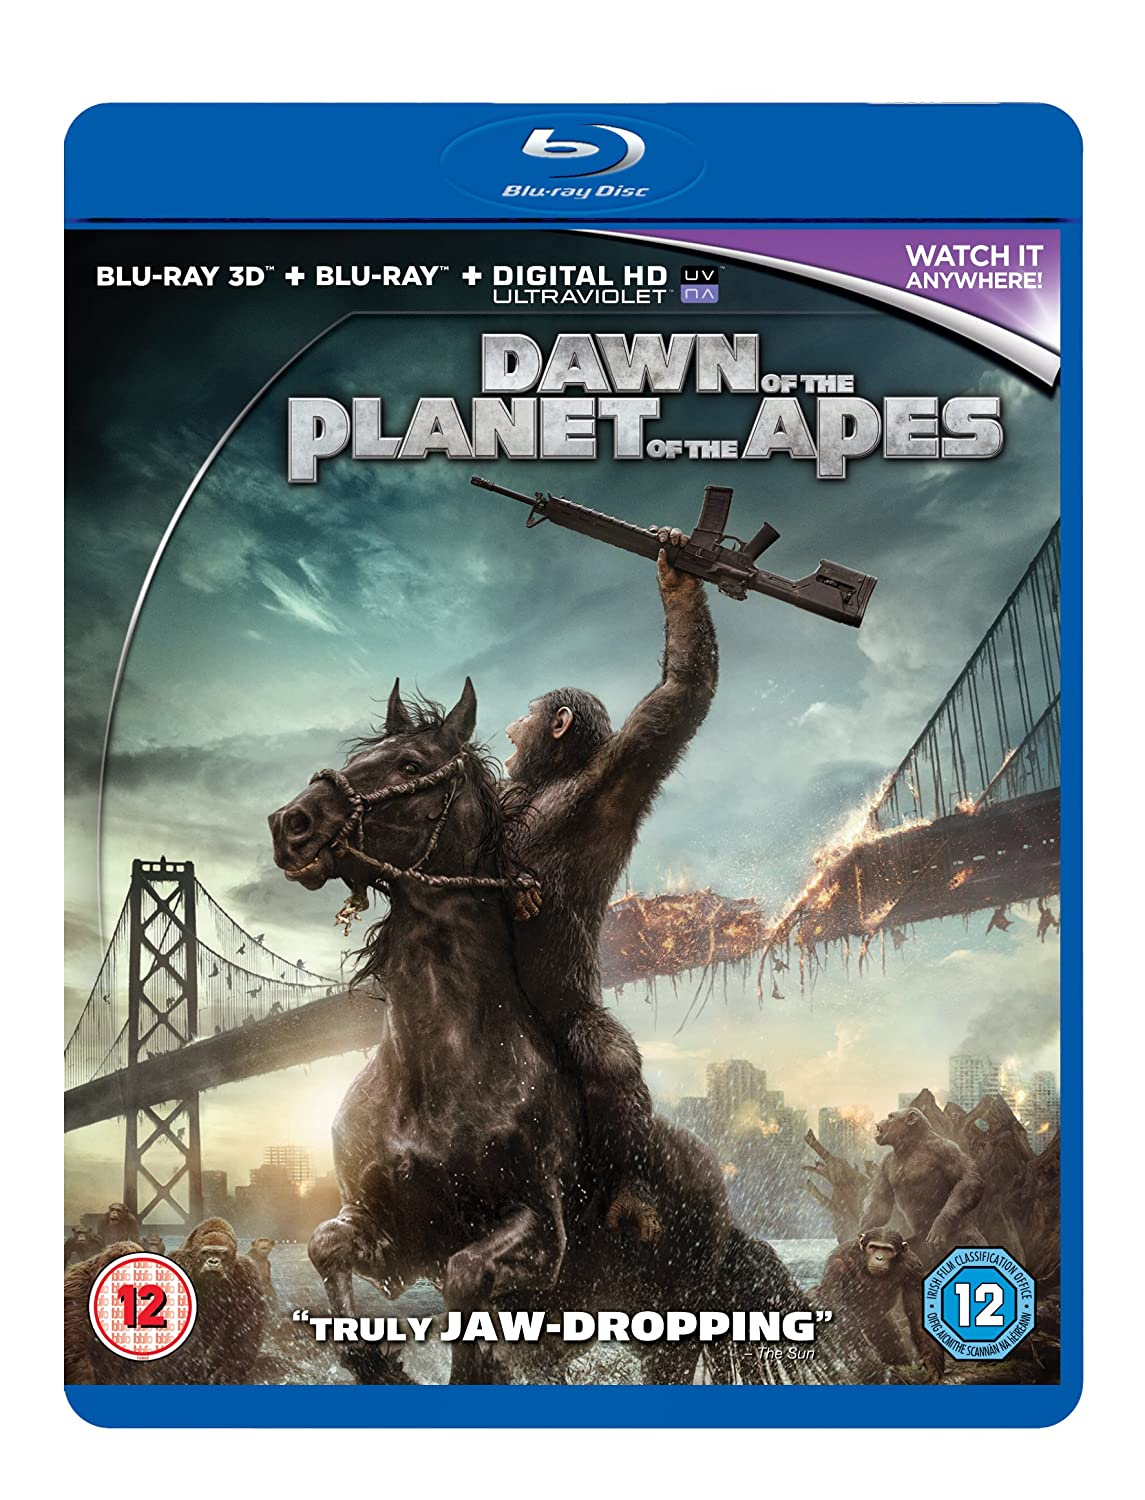 Dawn of the Planet of the Apes [Blu-ray 3D + Blu-ray] Gary Oldman Andy Serkis Matt Reeves MSE1273637